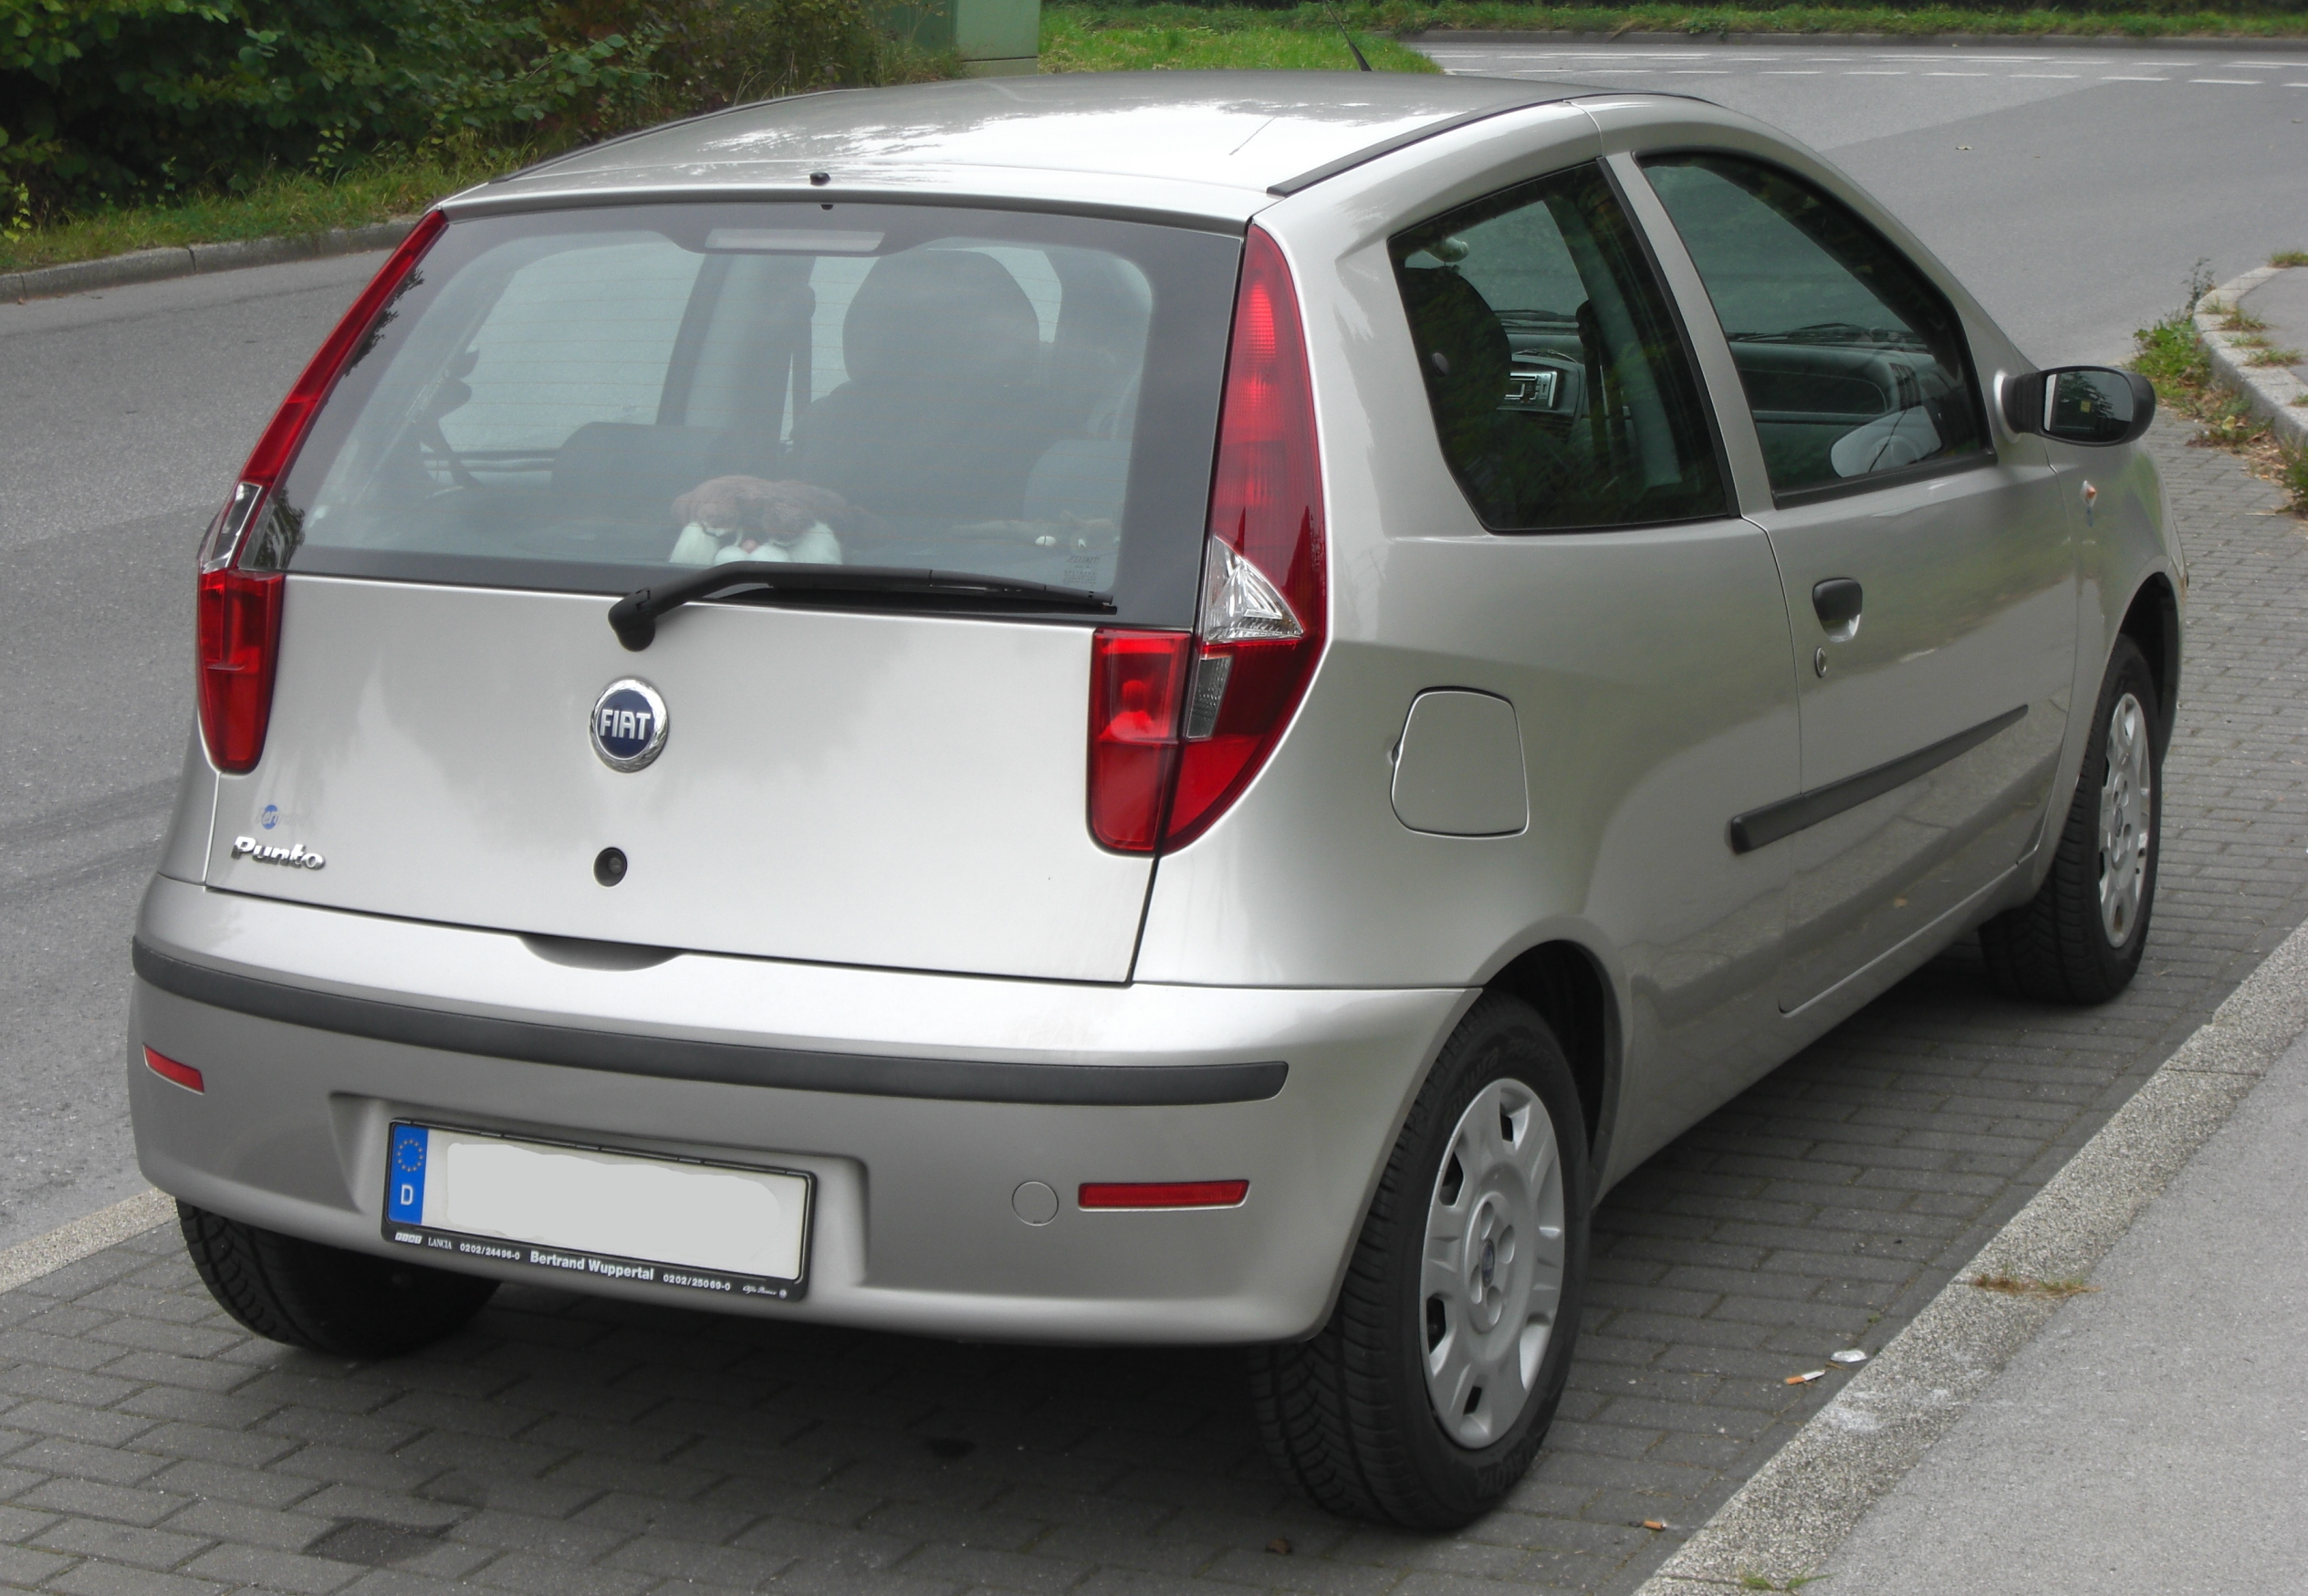 Fiat Wuppertal File Fiat Punto Ii Facelift Rear Jpg Wikimedia Commons